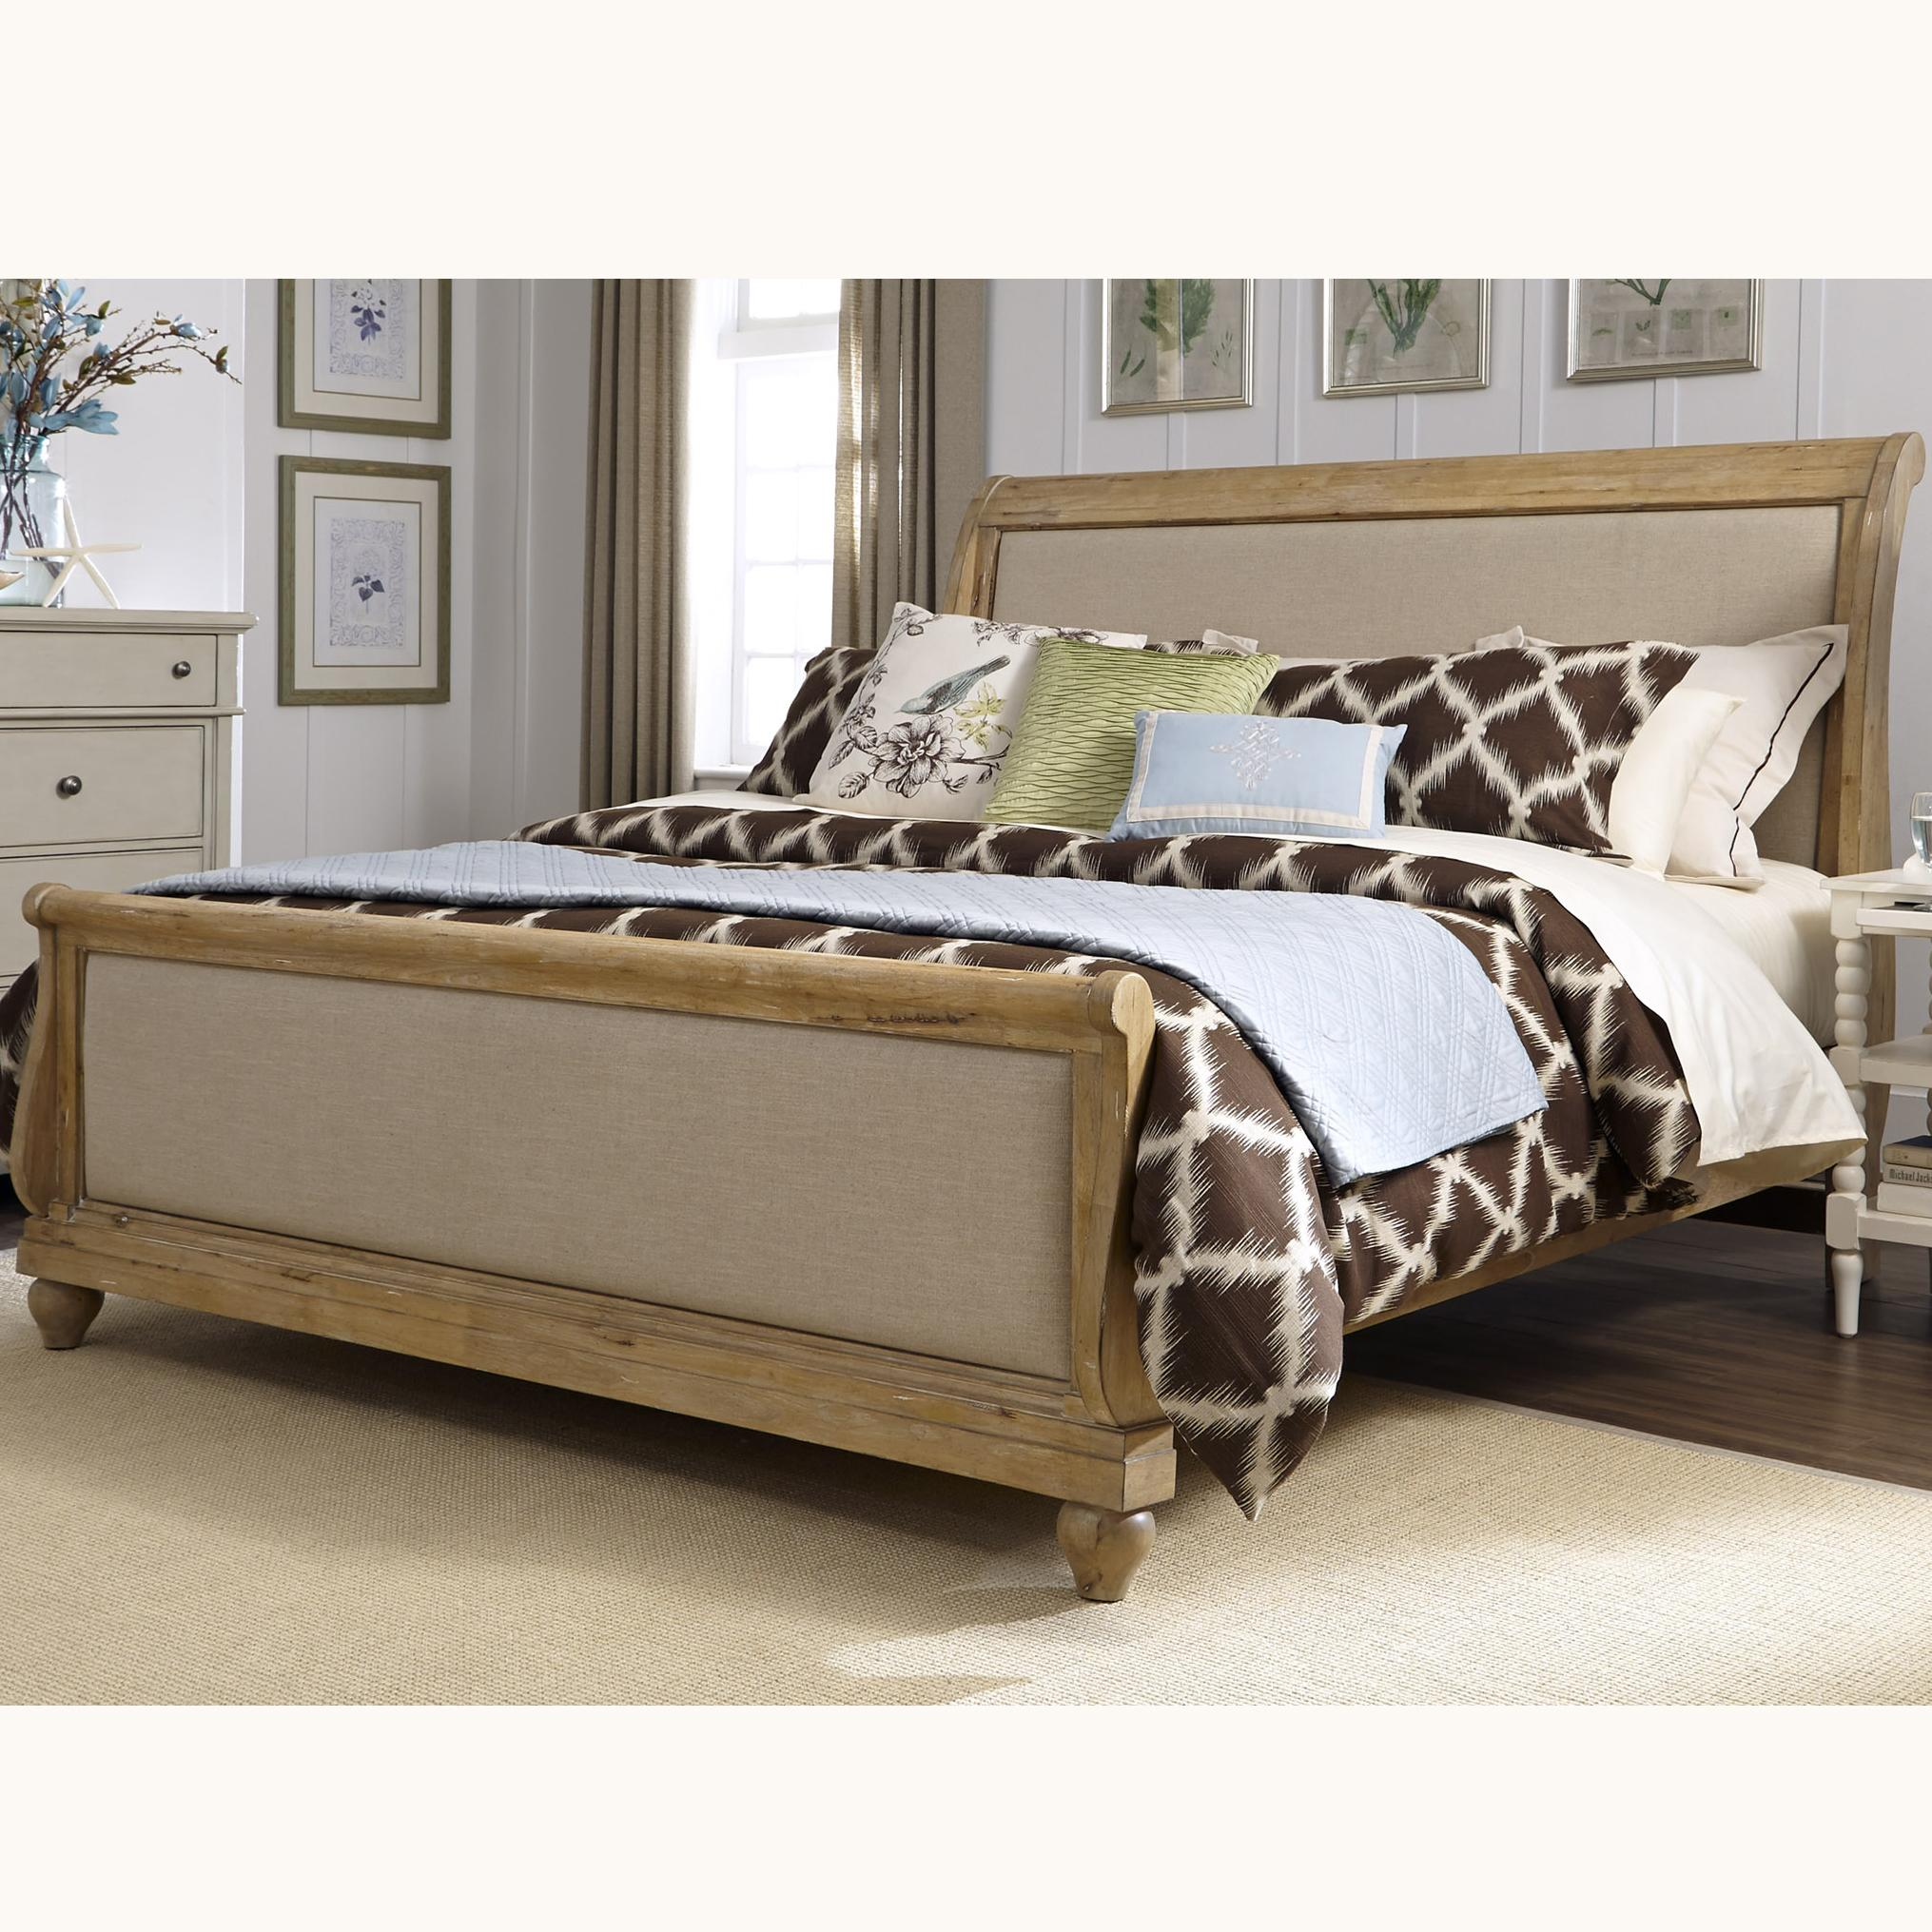 Liberty Furniture Harbor View Queen Sleigh Bed - Item Number: 531-BR-QSL